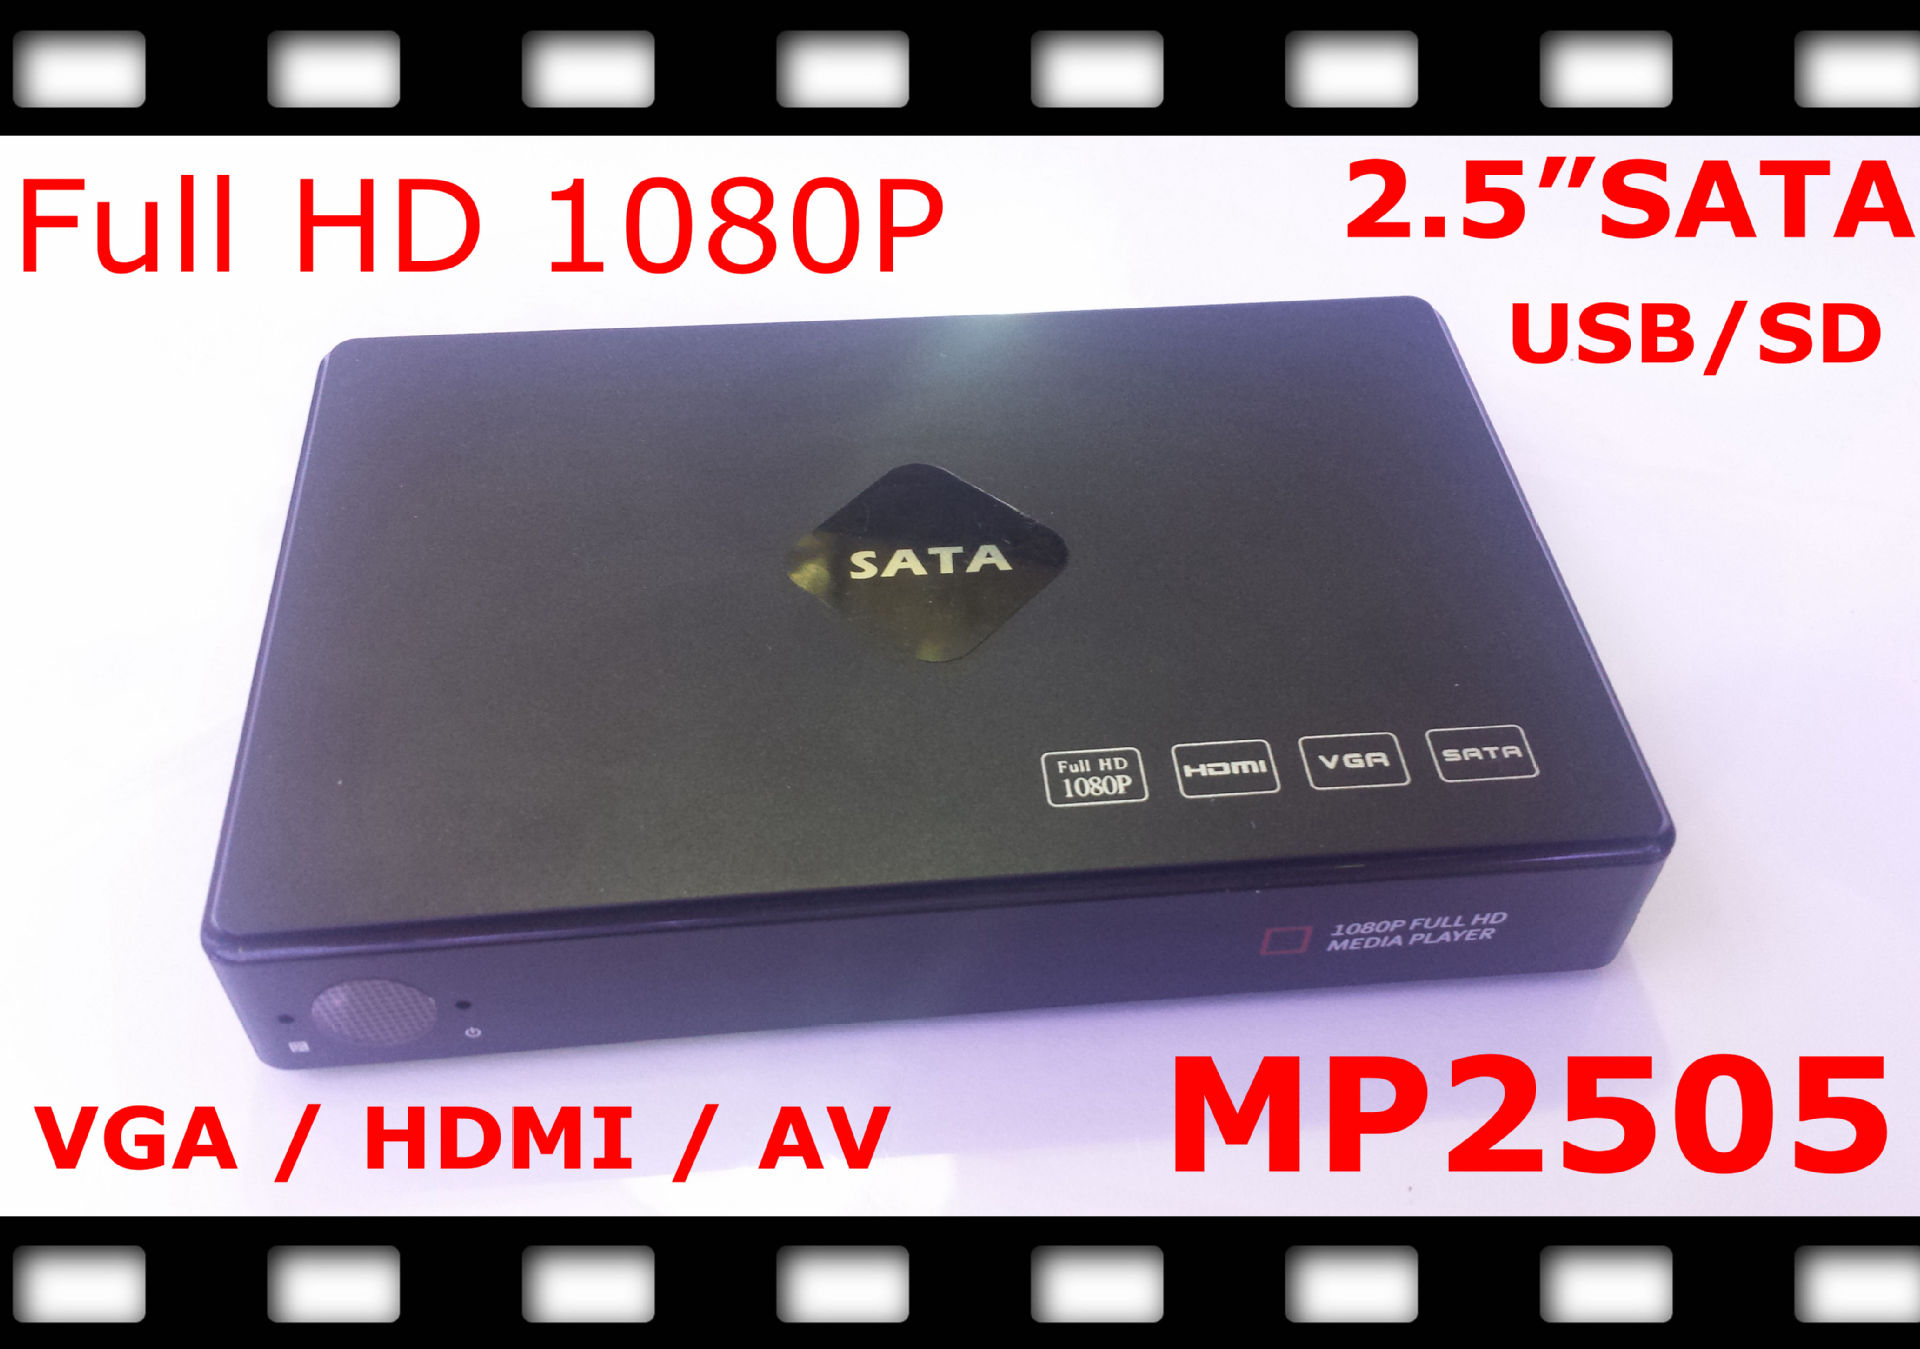 2015 Included No Mkv Limited Time-limited Mini 1080p Full-format Hard Disk Player, Blu-ray Support For Sd Card / Usb Host(China (Mainland))